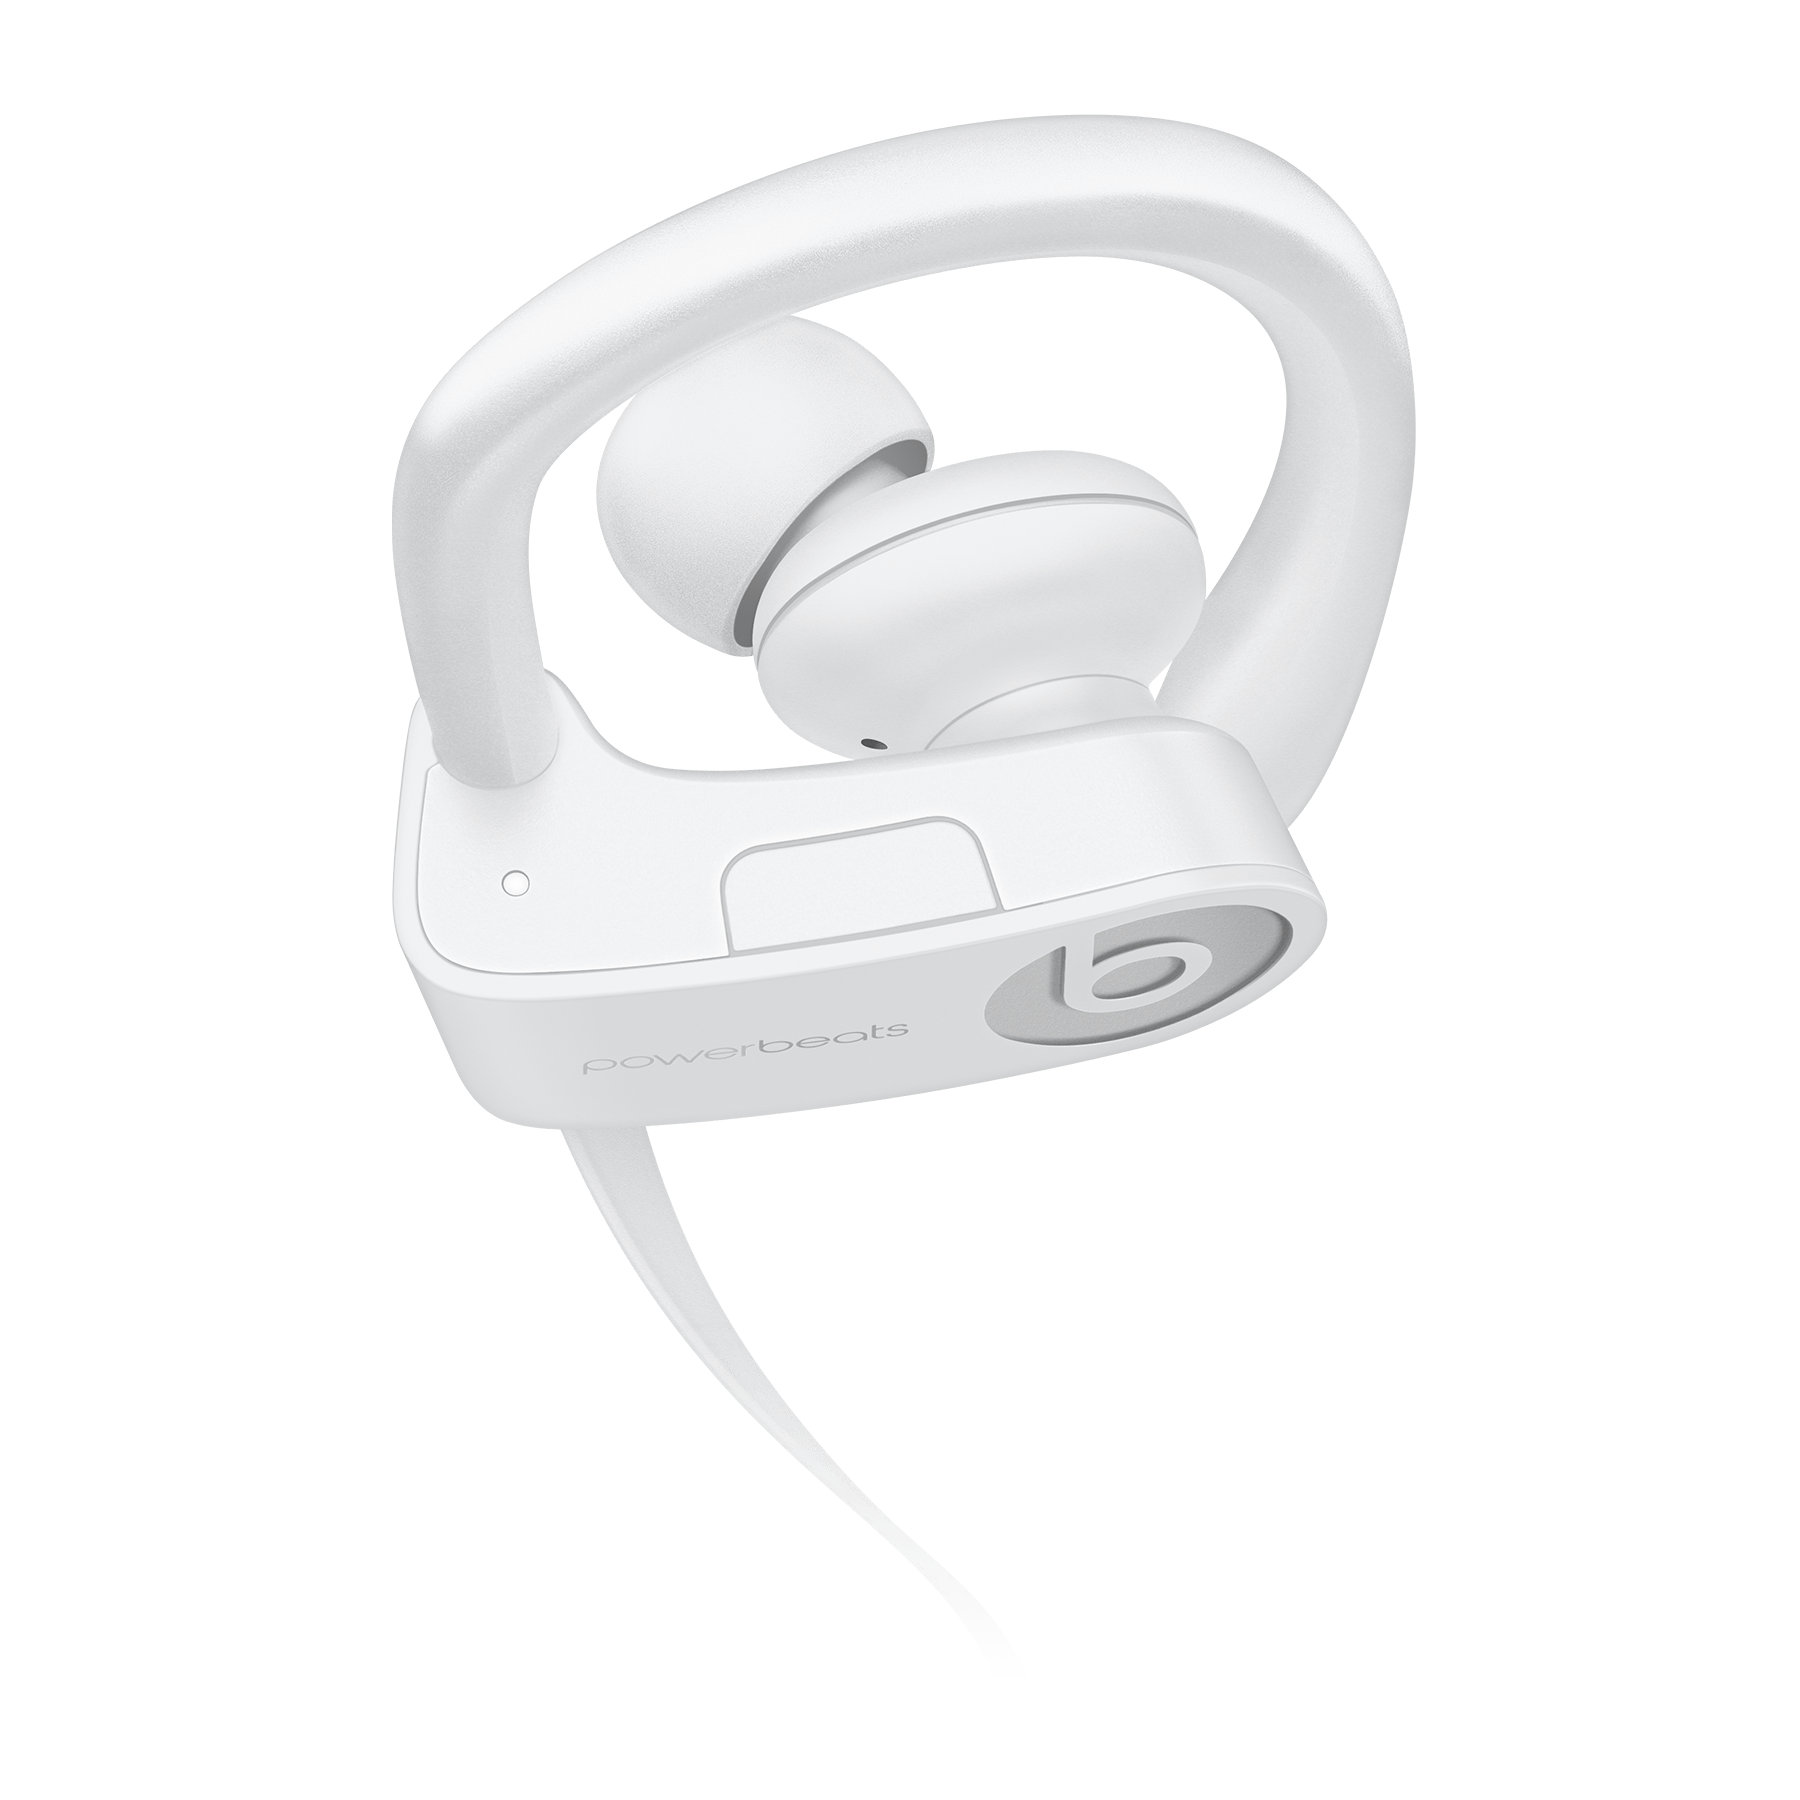 330b0e3f293 Powerbeats3 Wireless - Beats by Dre